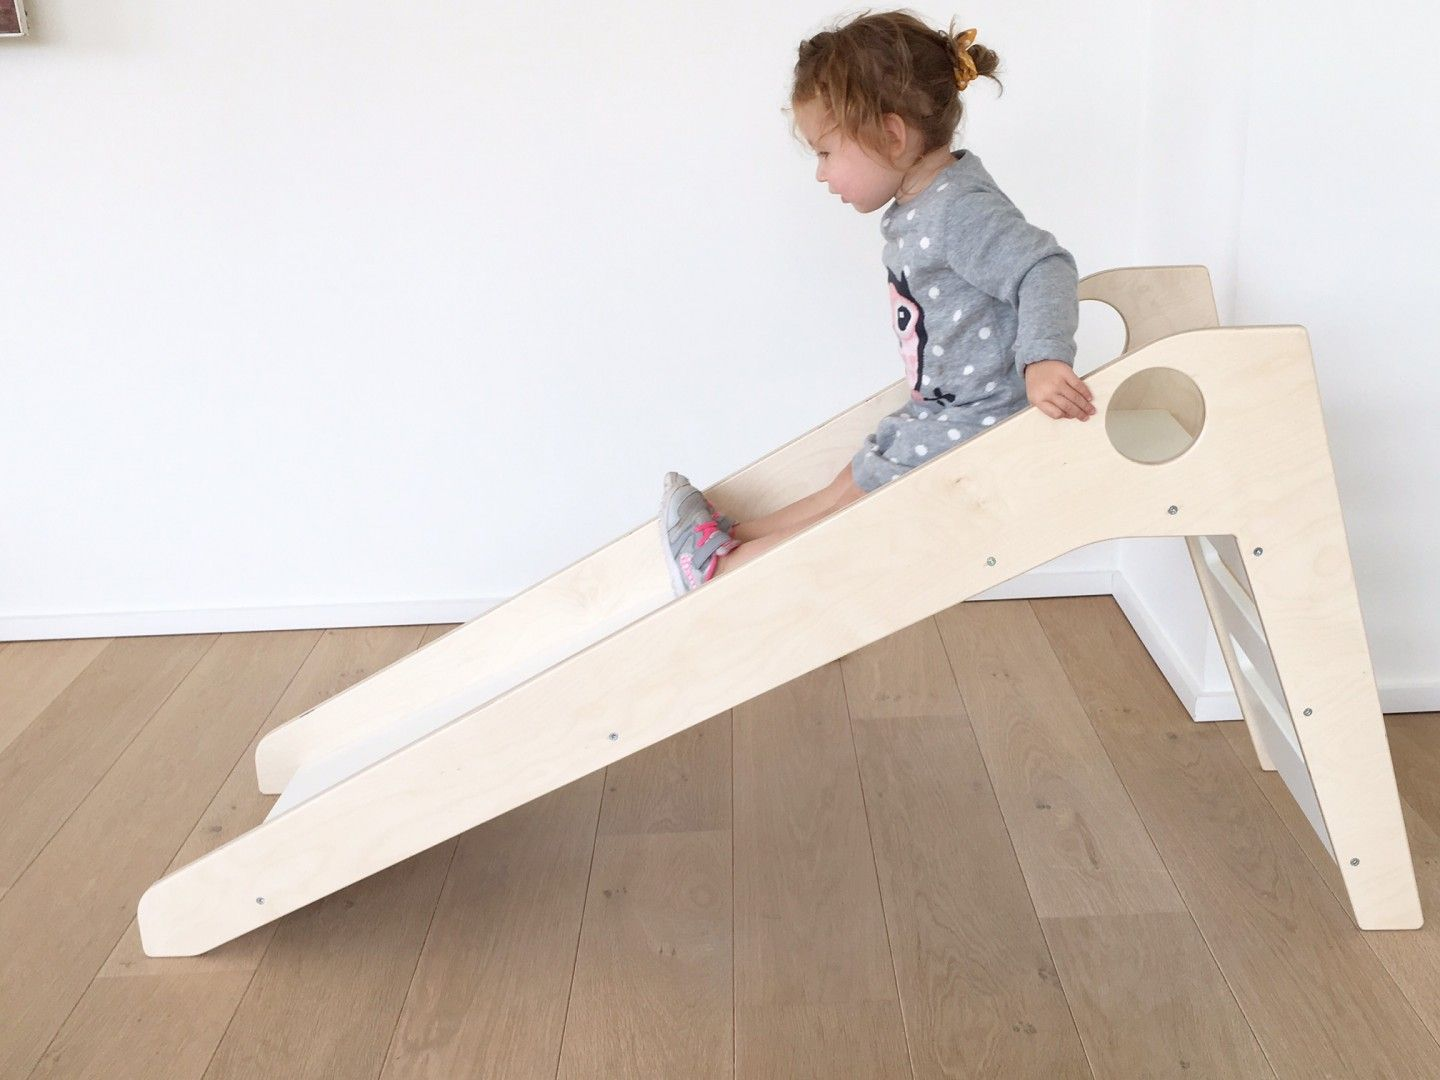 Wooden Slide Maxx - Wood | U Play | Pinterest | Indoor slides and ...